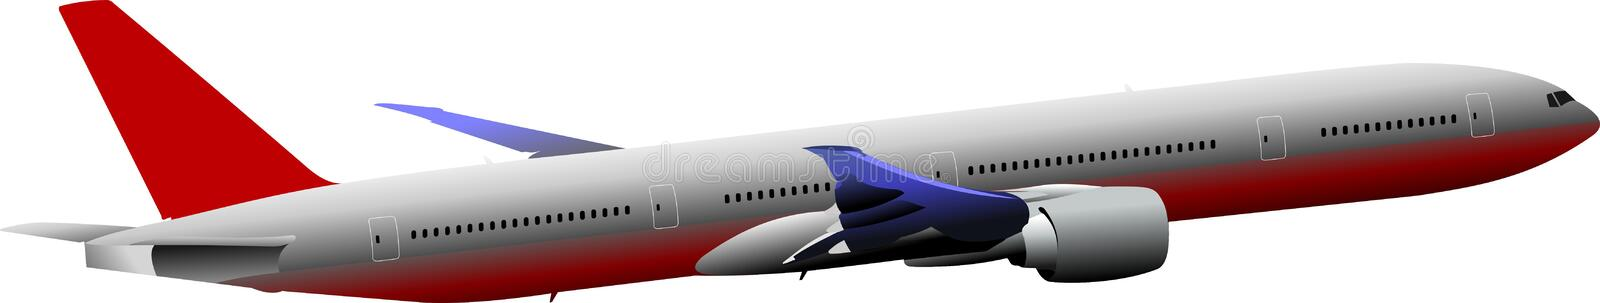 Passenger Airplanes.  Colored Vector illustr. Ation for designers royalty free illustration